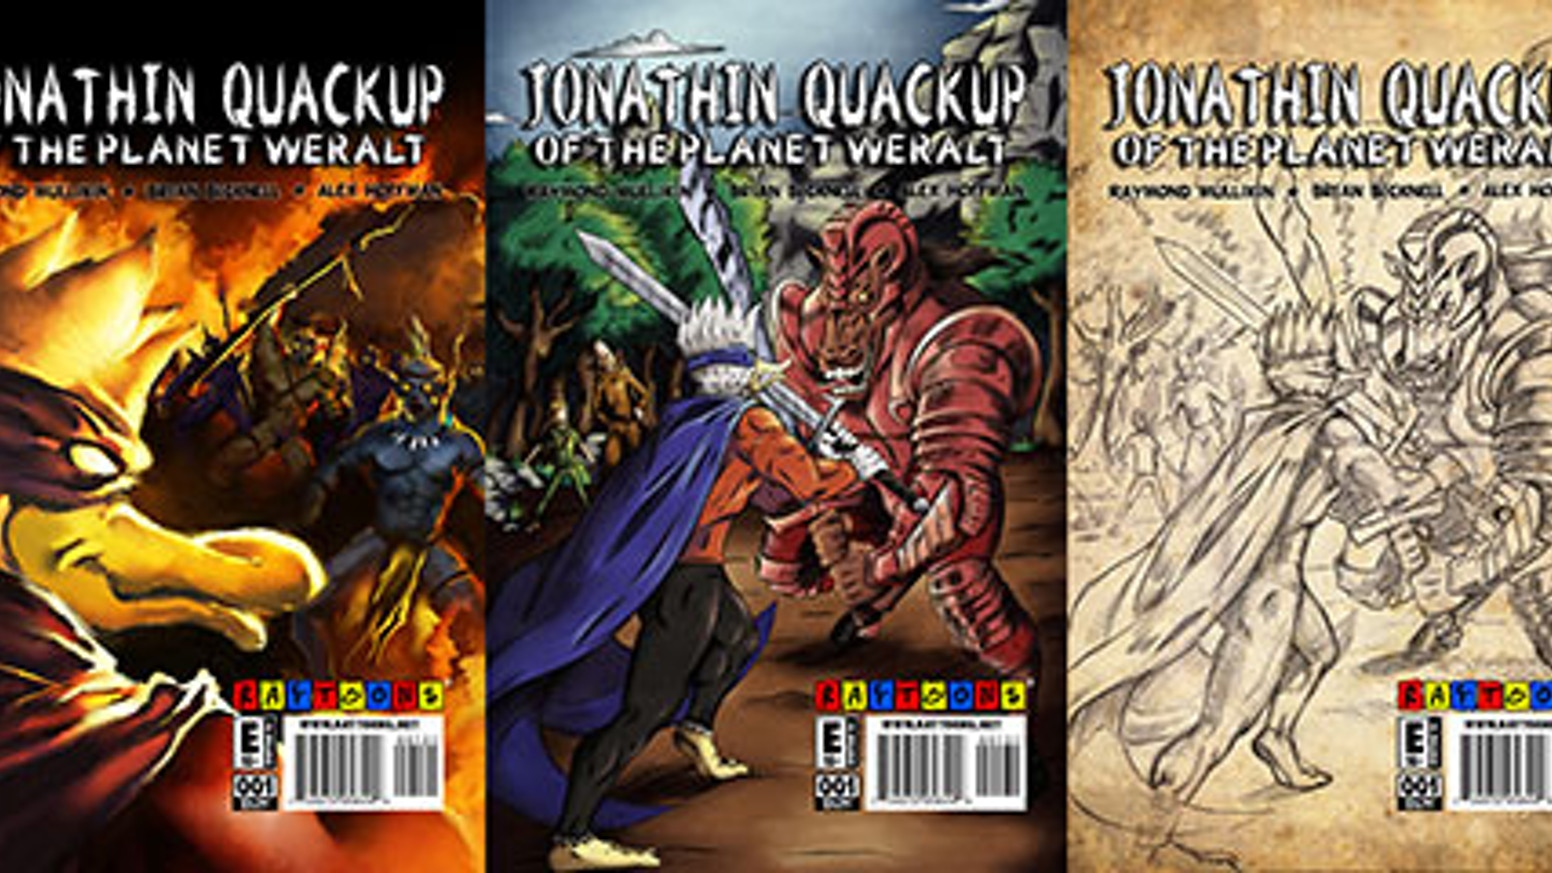 """Get the comic for as low as a $2 Pledge! You can also get your own Alternate or """"Personalized"""" Cover Edition of Quackup as well! Wow!!!"""